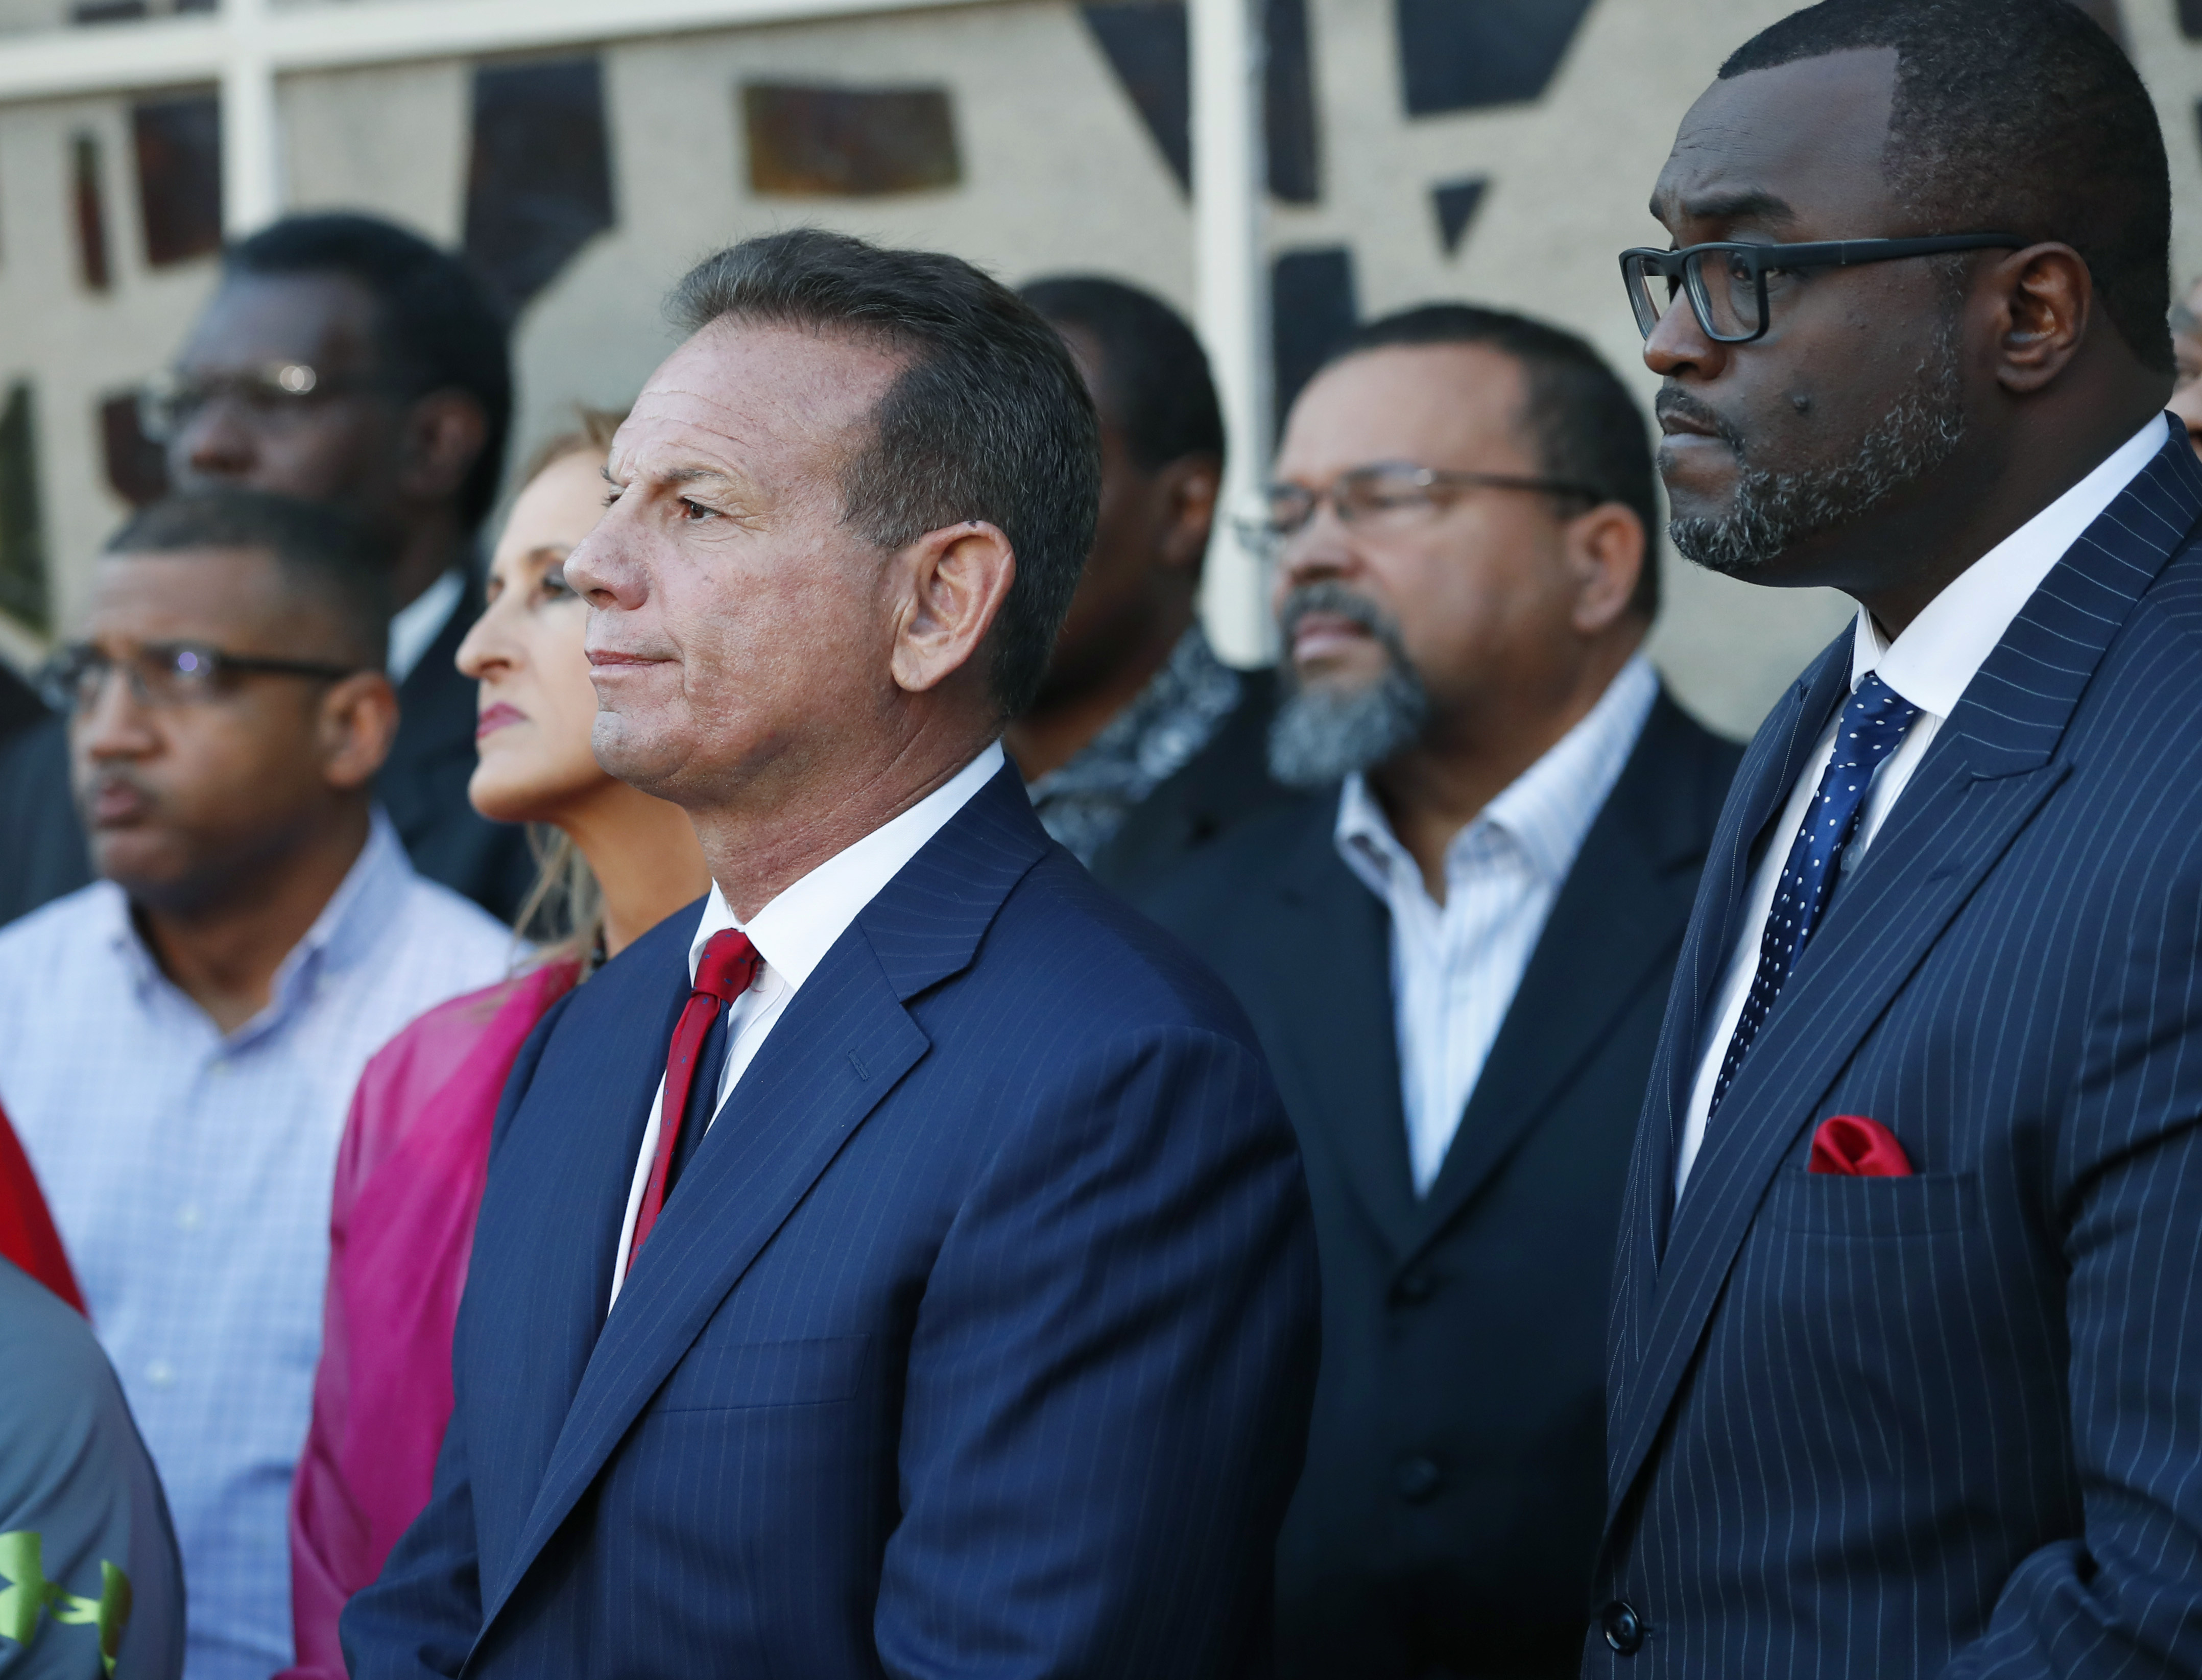 Suspended Broward County Sheriff Scott Israel (center) listens to comments by his attorney at a news conference in Fort Lauderdale, Fla., after new Florida Gov. Ron DeSantis suspended Israel on Friday, Jan. 11, 2019, over his handling of February's massacre at Marjory Stoneman Douglas High School. (Wilfredo Lee/AP)